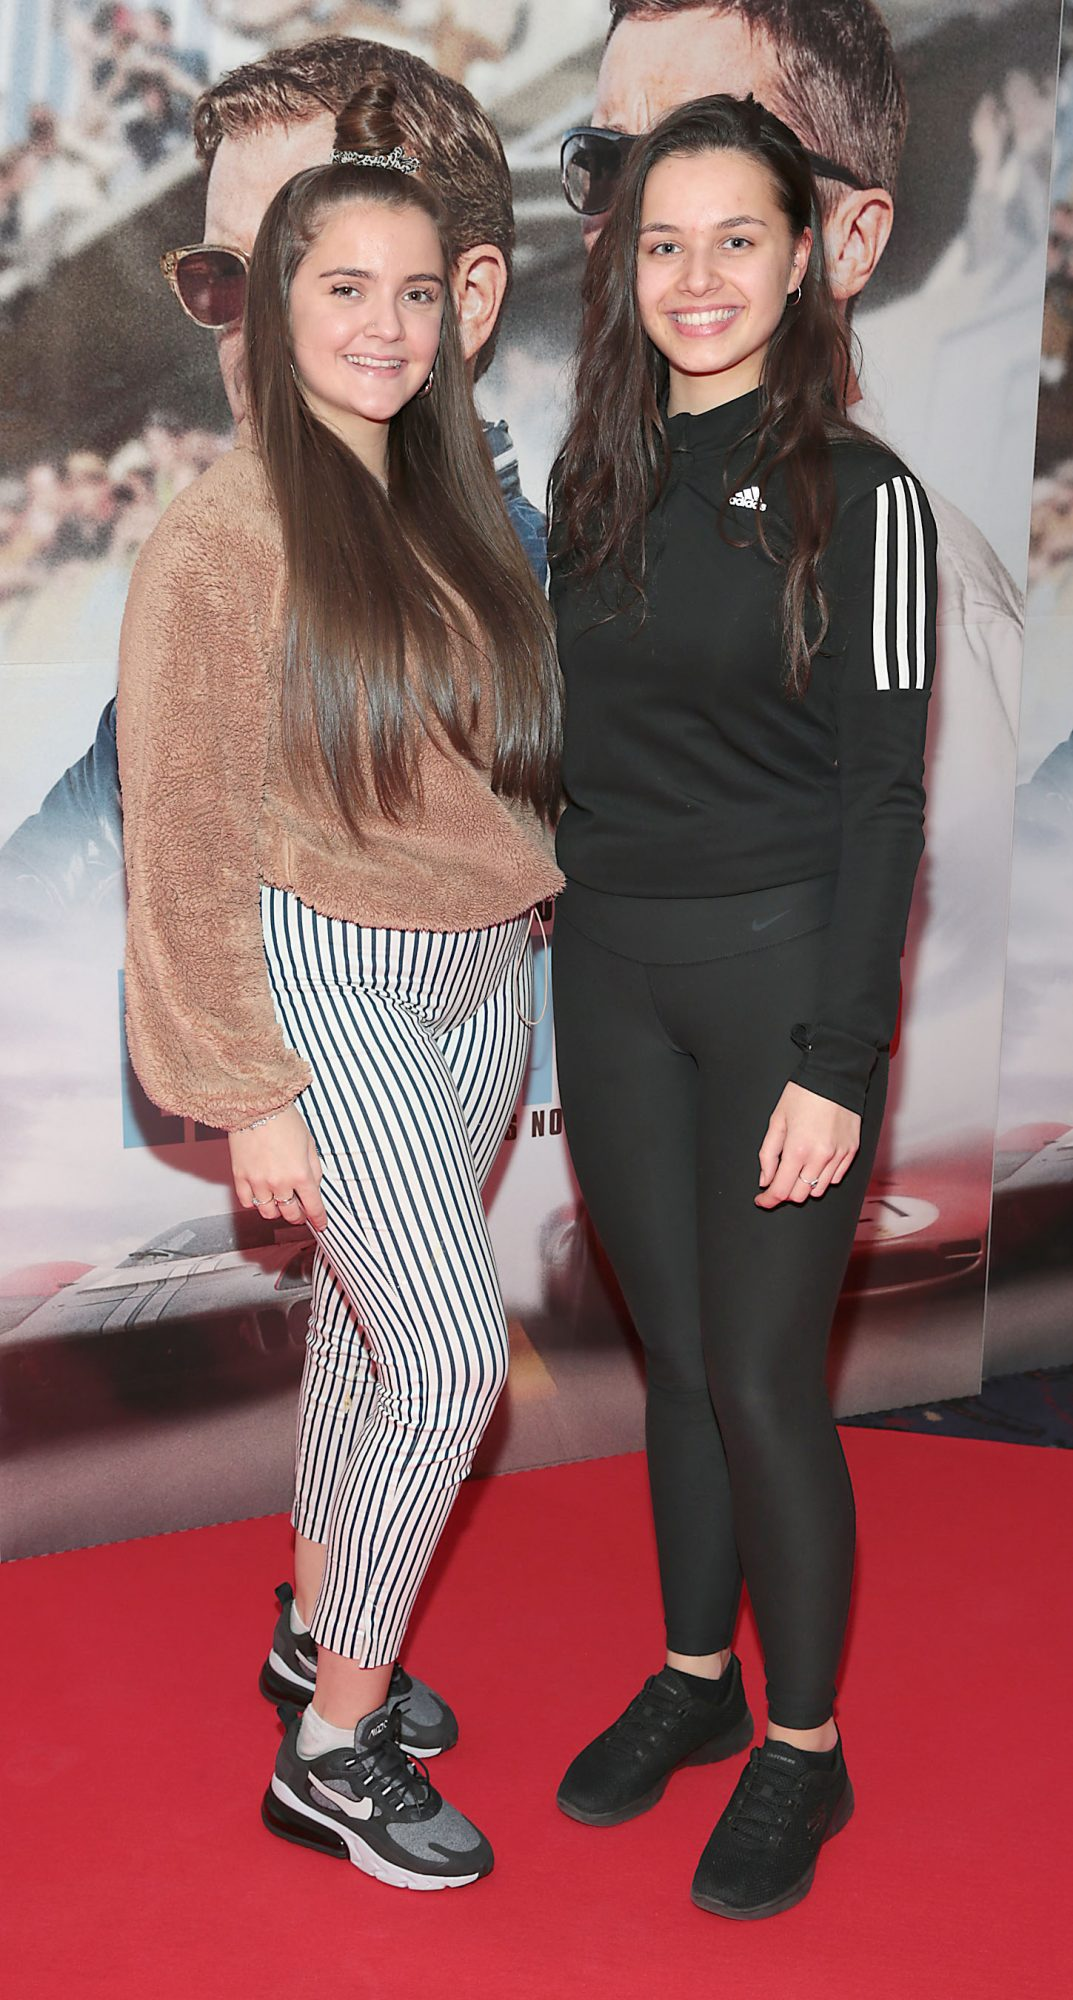 Rachel Cummins and Amy Colley pictured at the special preview screening of Le Mans '66 at Cineworld, Dublin. Photo: Brian McEvoy.